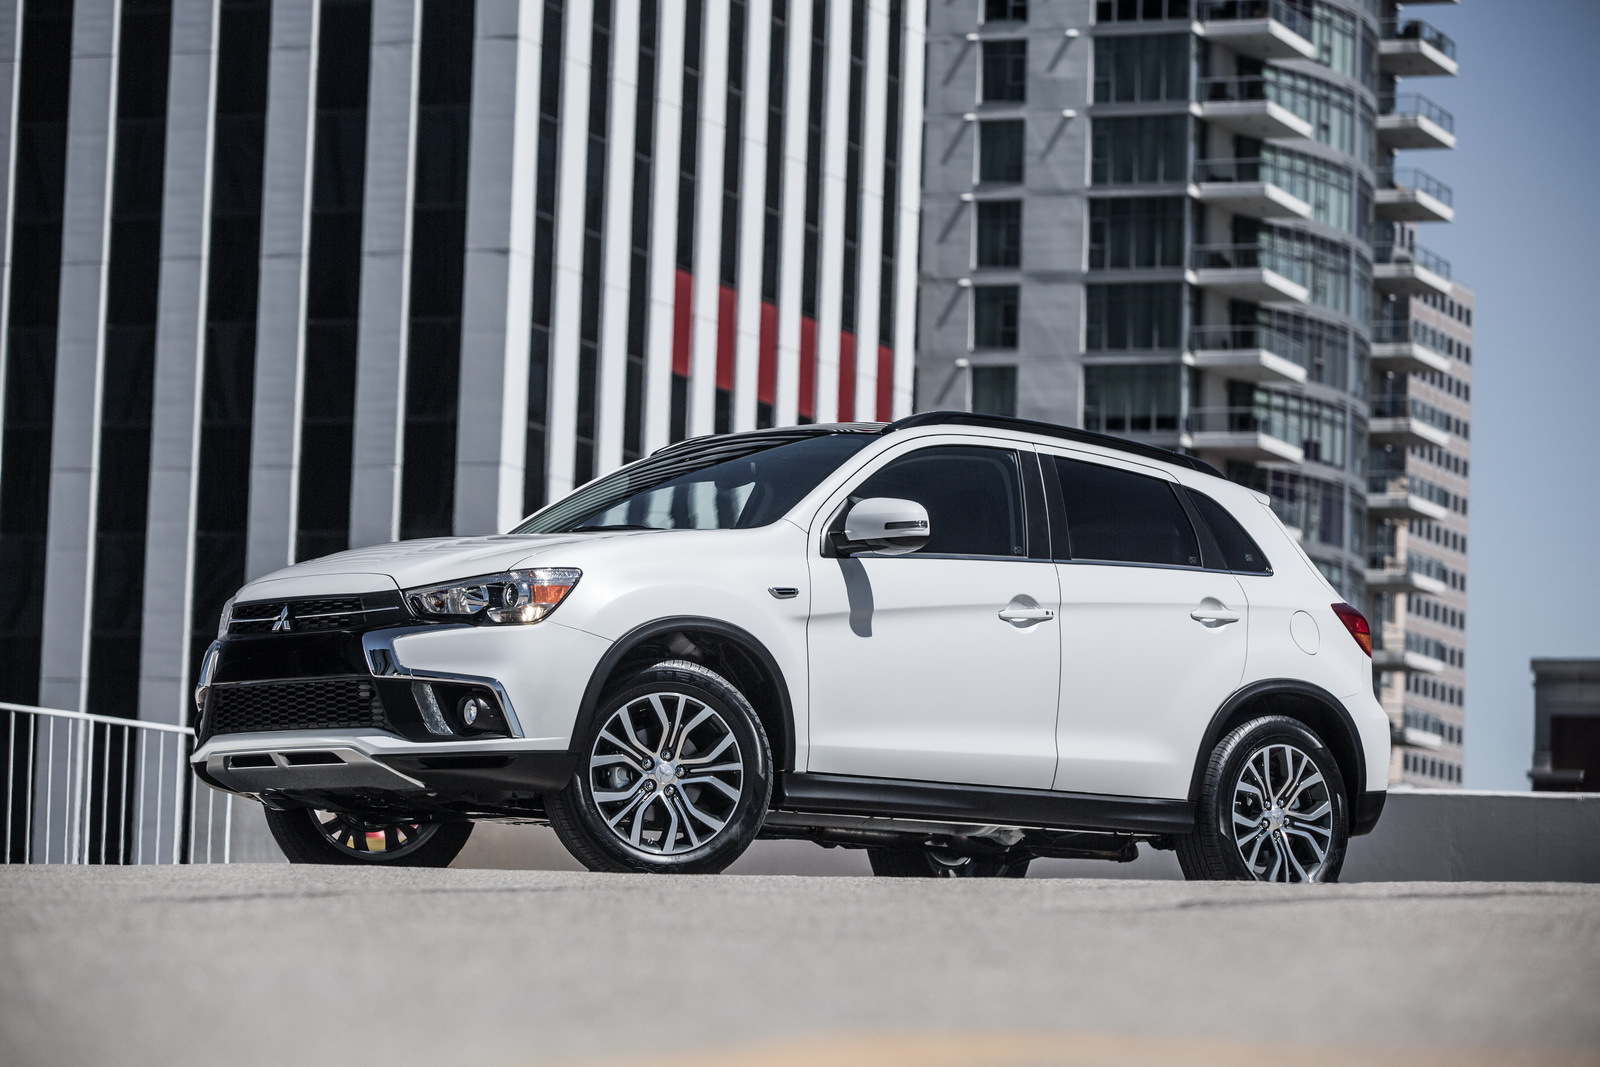 Mitsubishi To Debut 2018 Outlander Sport At NY Auto Show ...